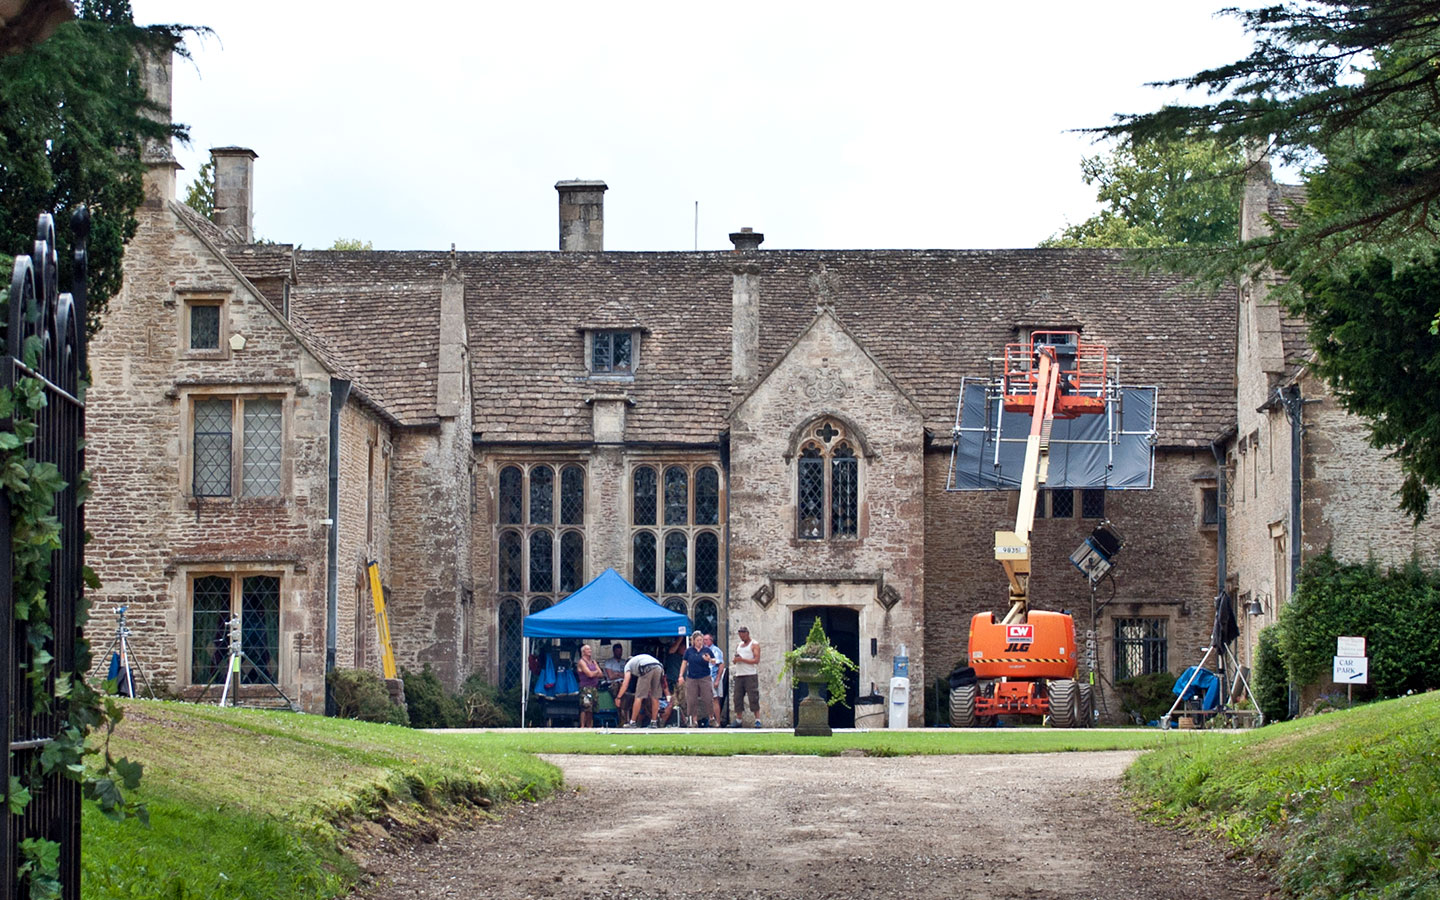 Filming taking place at Chavenage House in the Cotswolds